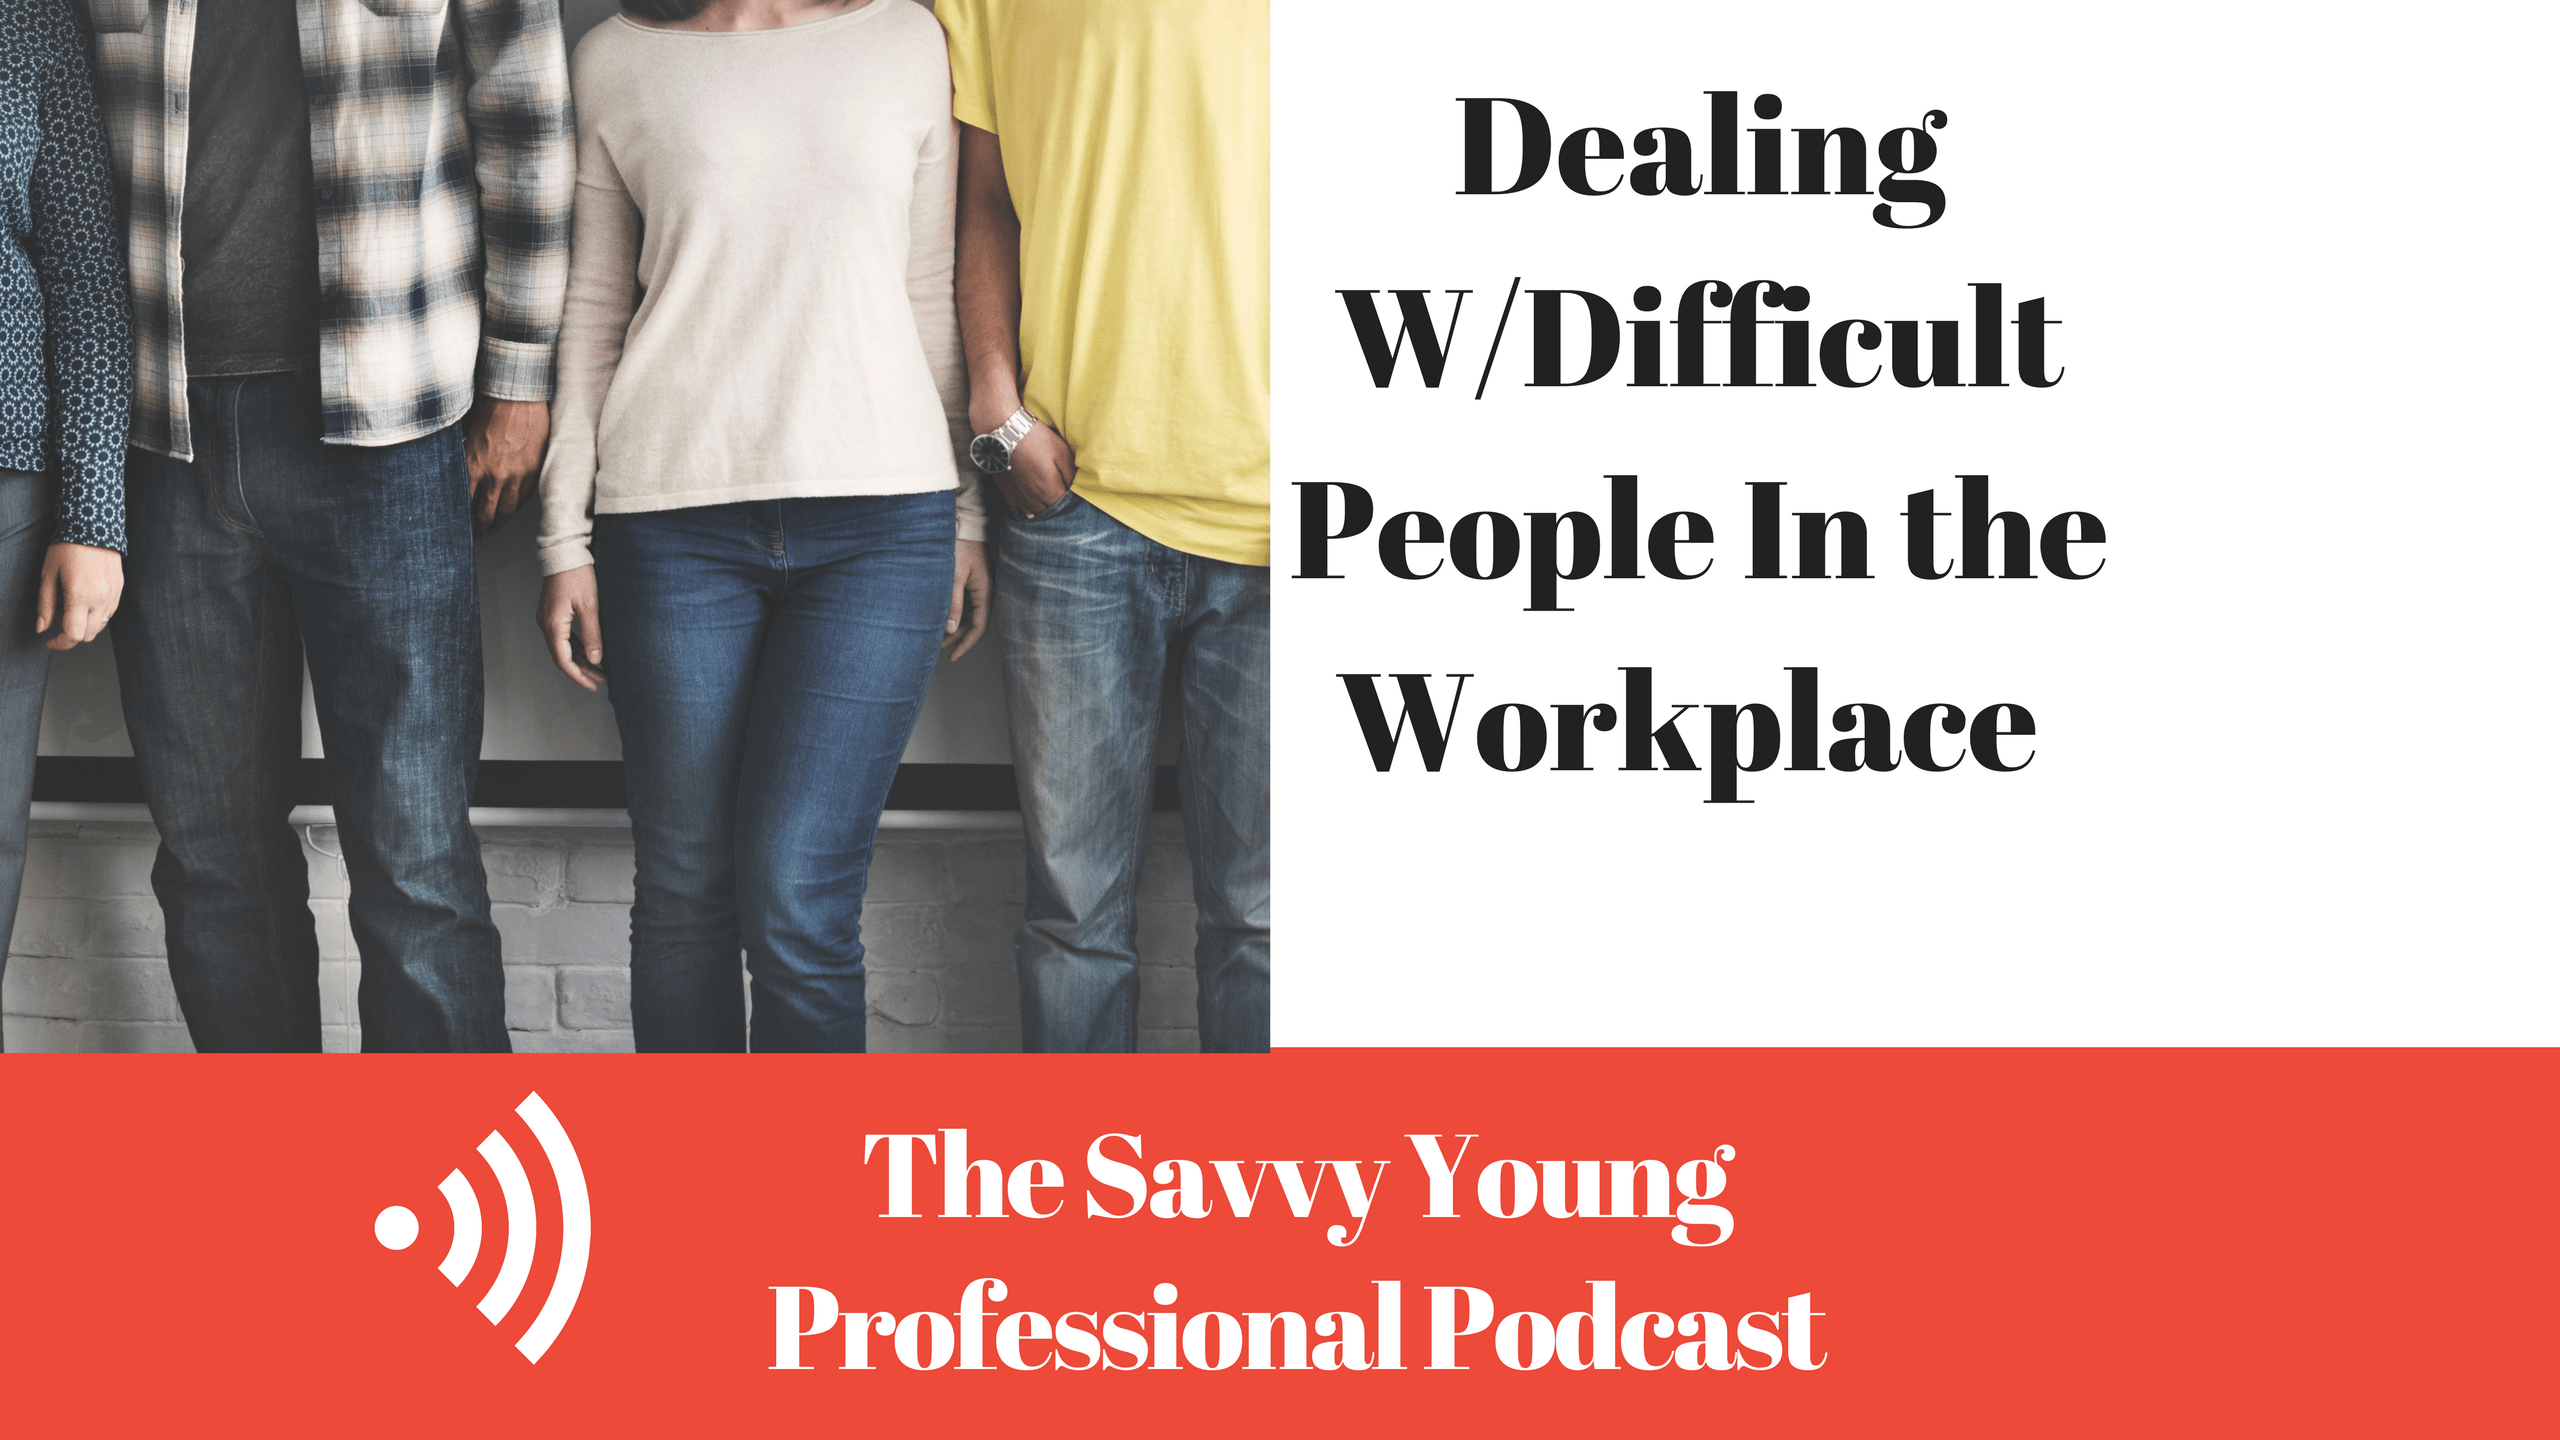 podcast-2-qa-dealing-difficult-people